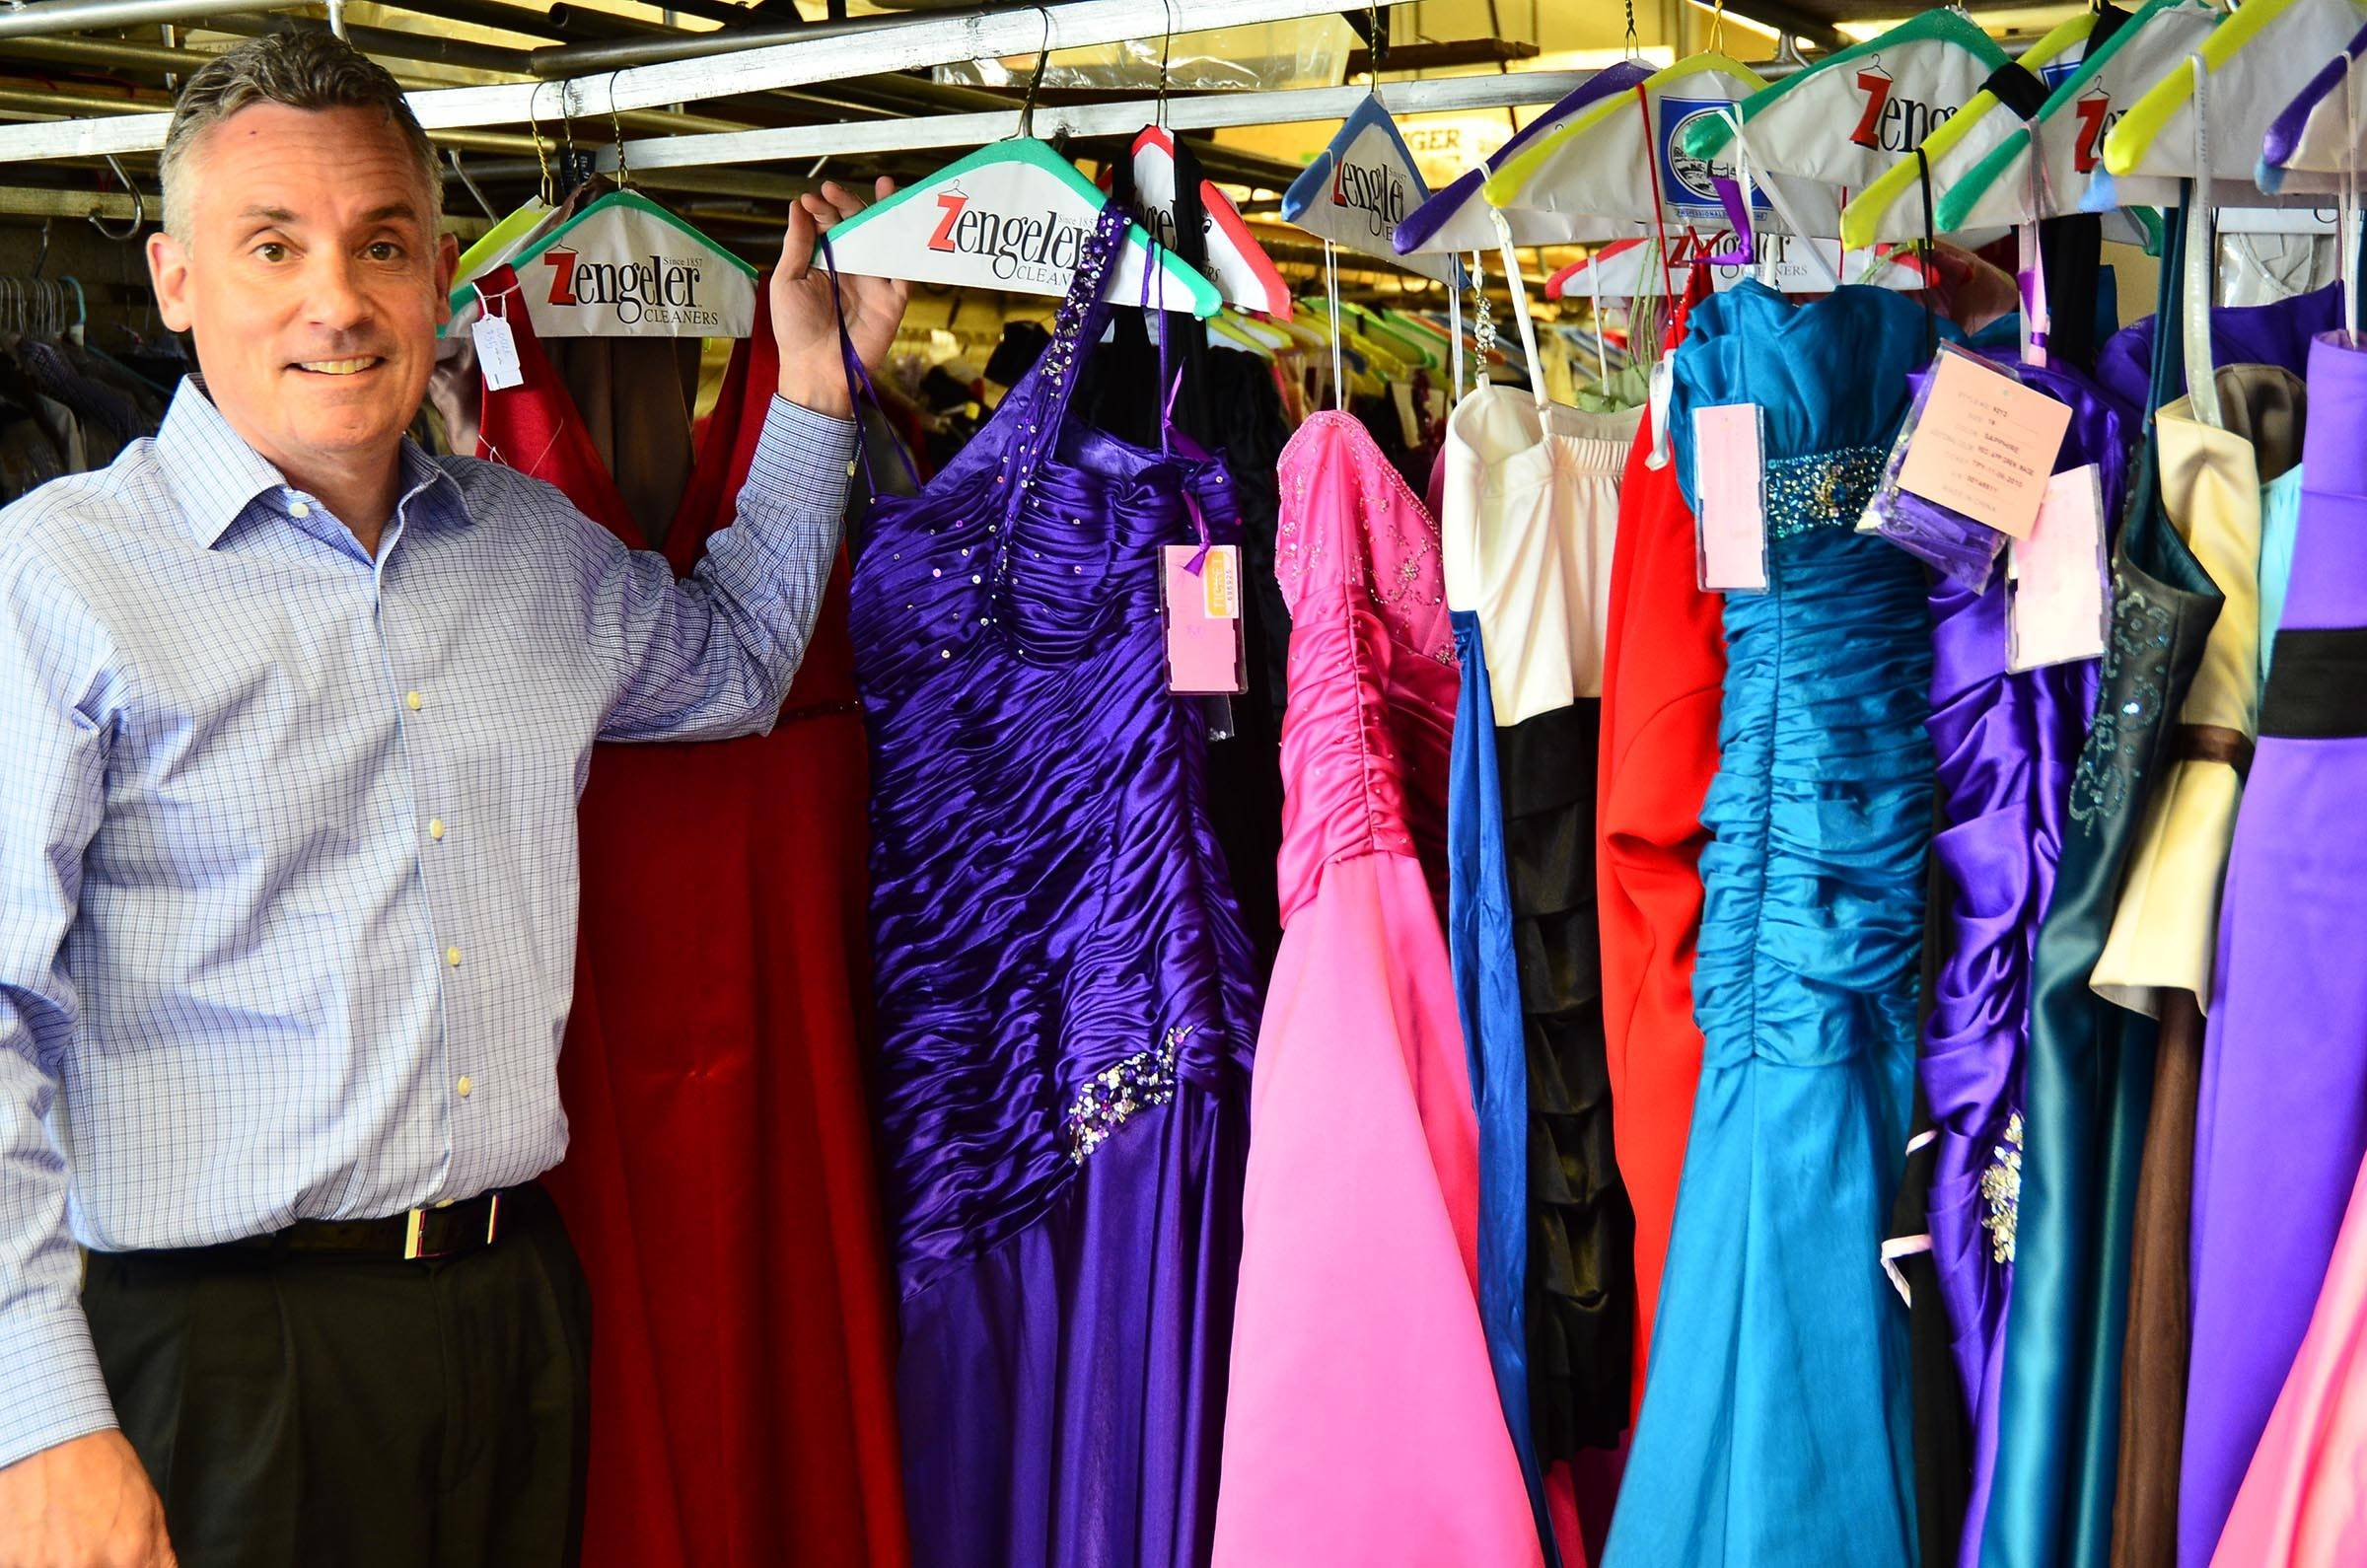 Tom Zengeler, president of Zengeler Cleaners, is pictured with dress previously donated to the Glass Slipper Project.